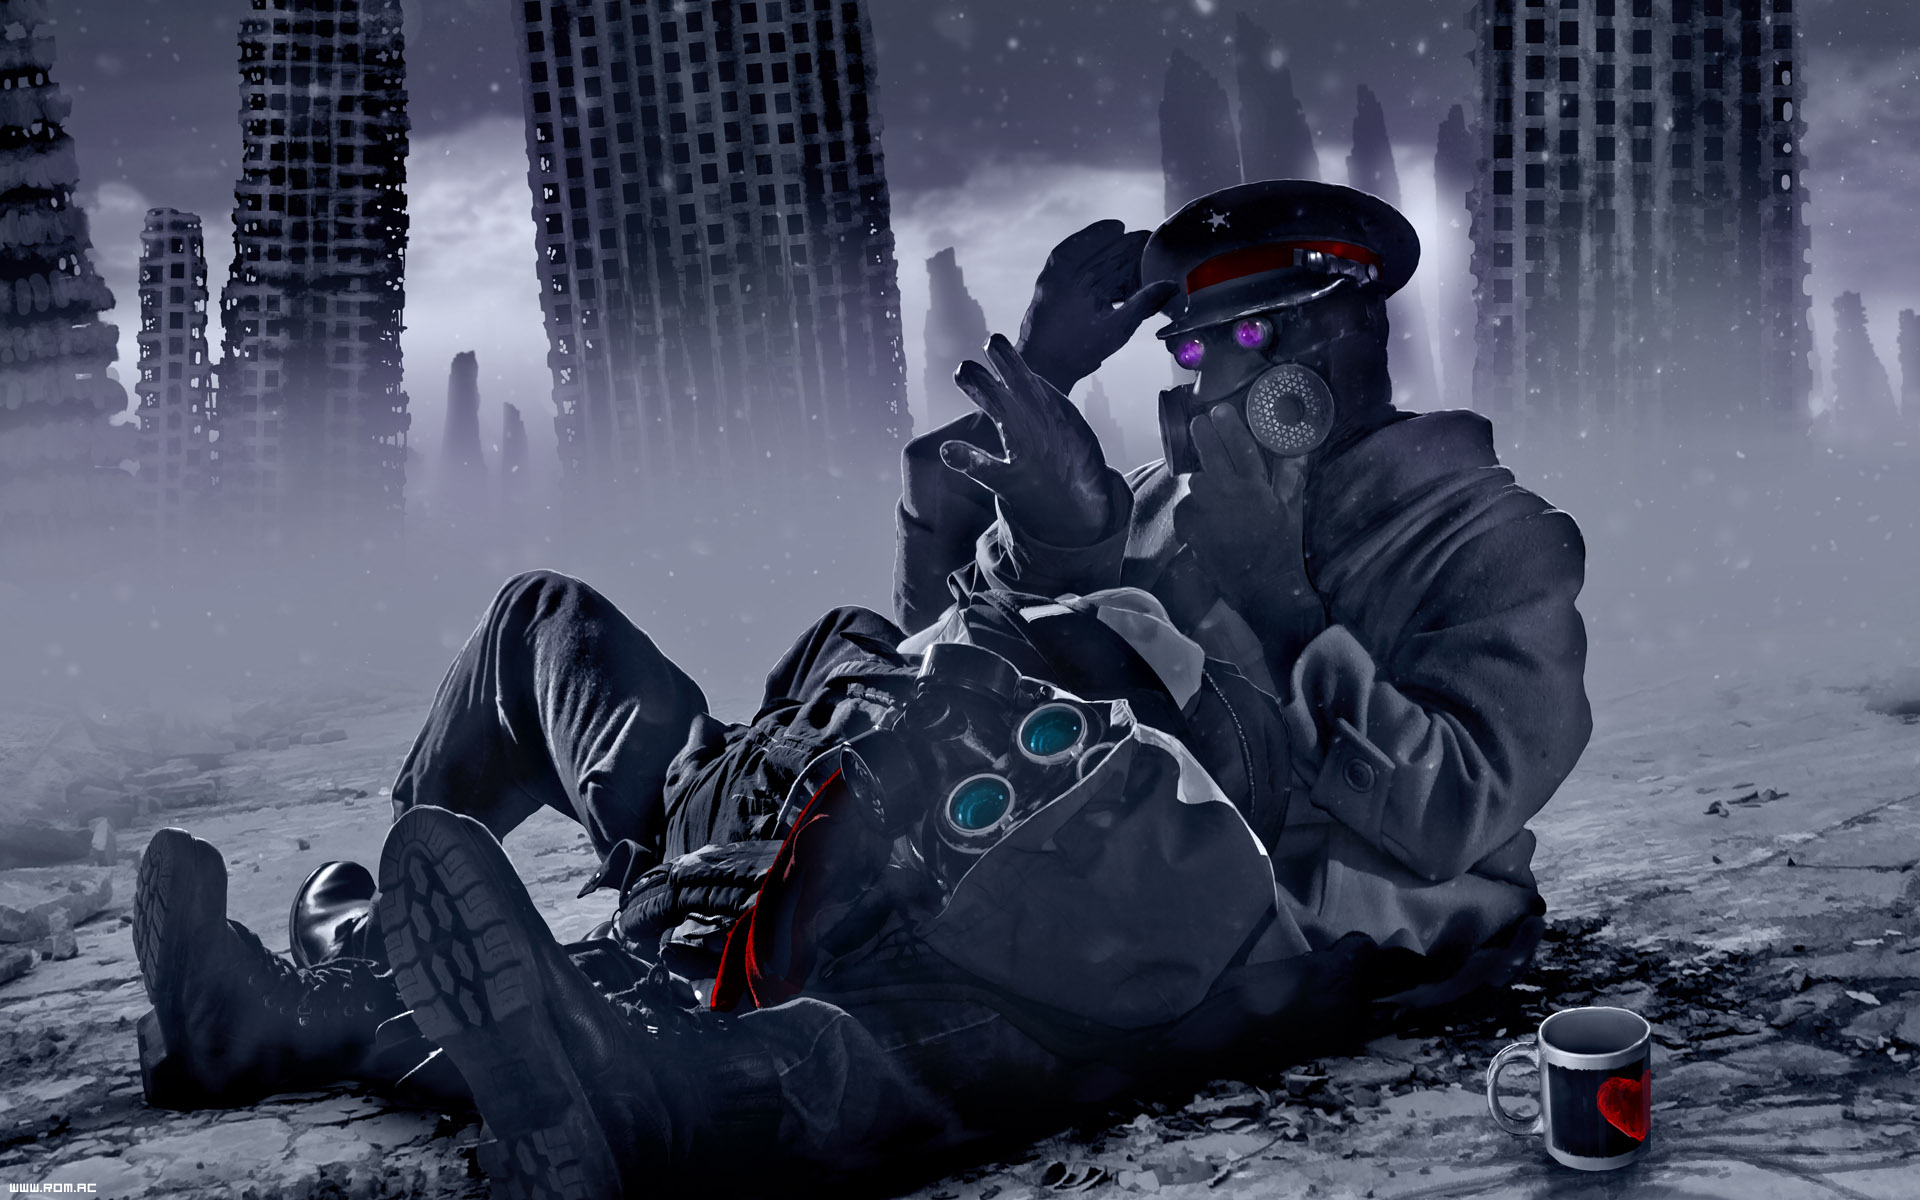 Dj Wallpaper Hd For Iphone Romantically Apocalyptic Full Hd Wallpaper And Background